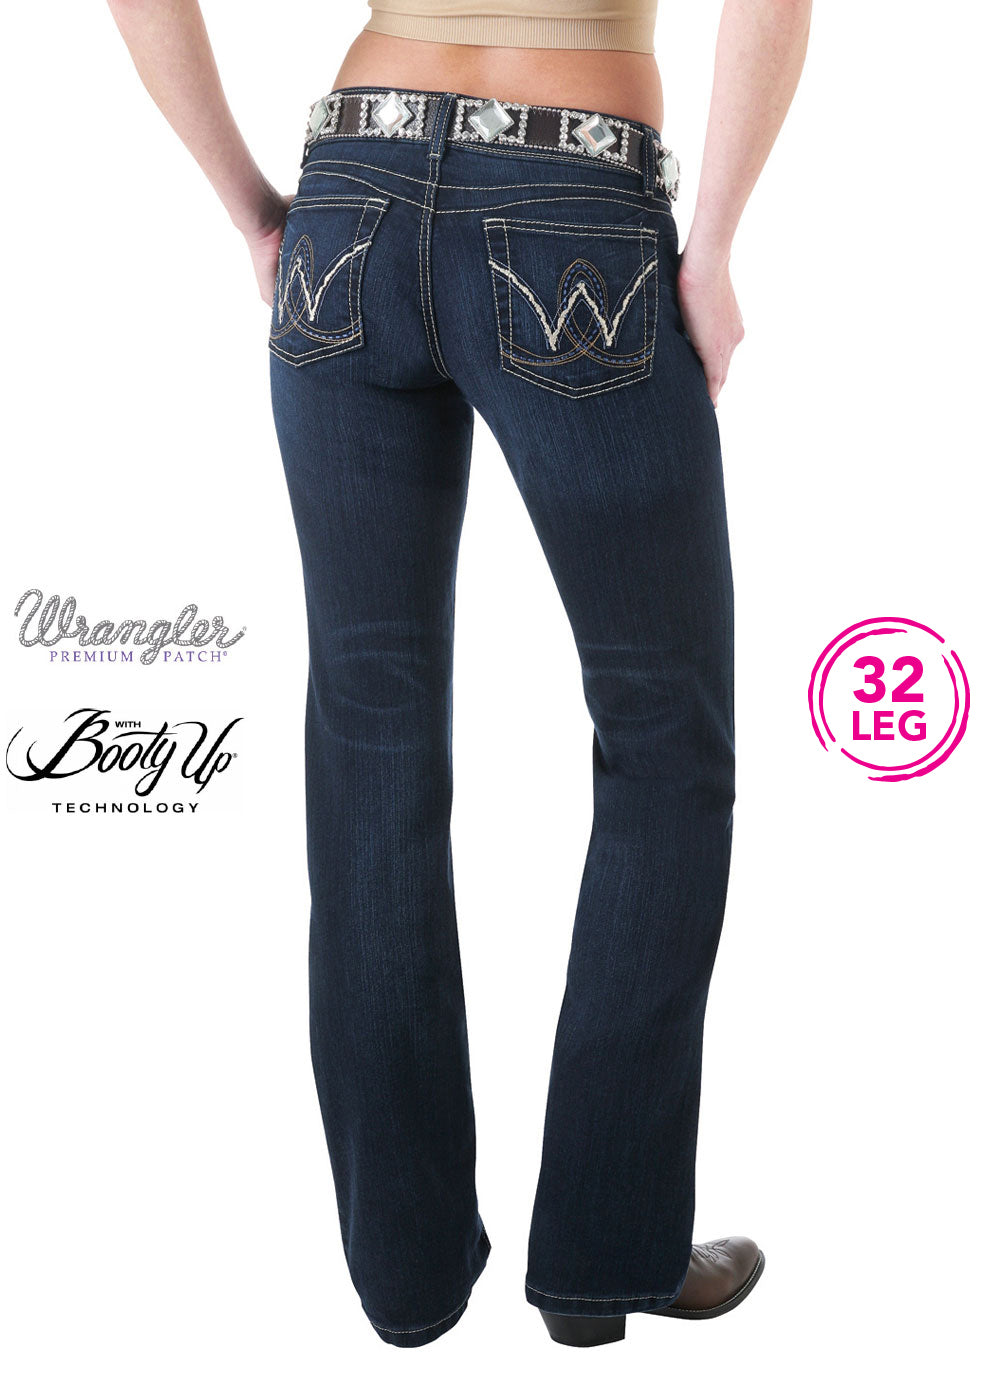 WMN P/PATCH BOOTY UPSITS ABOVE HIP JEAN 32